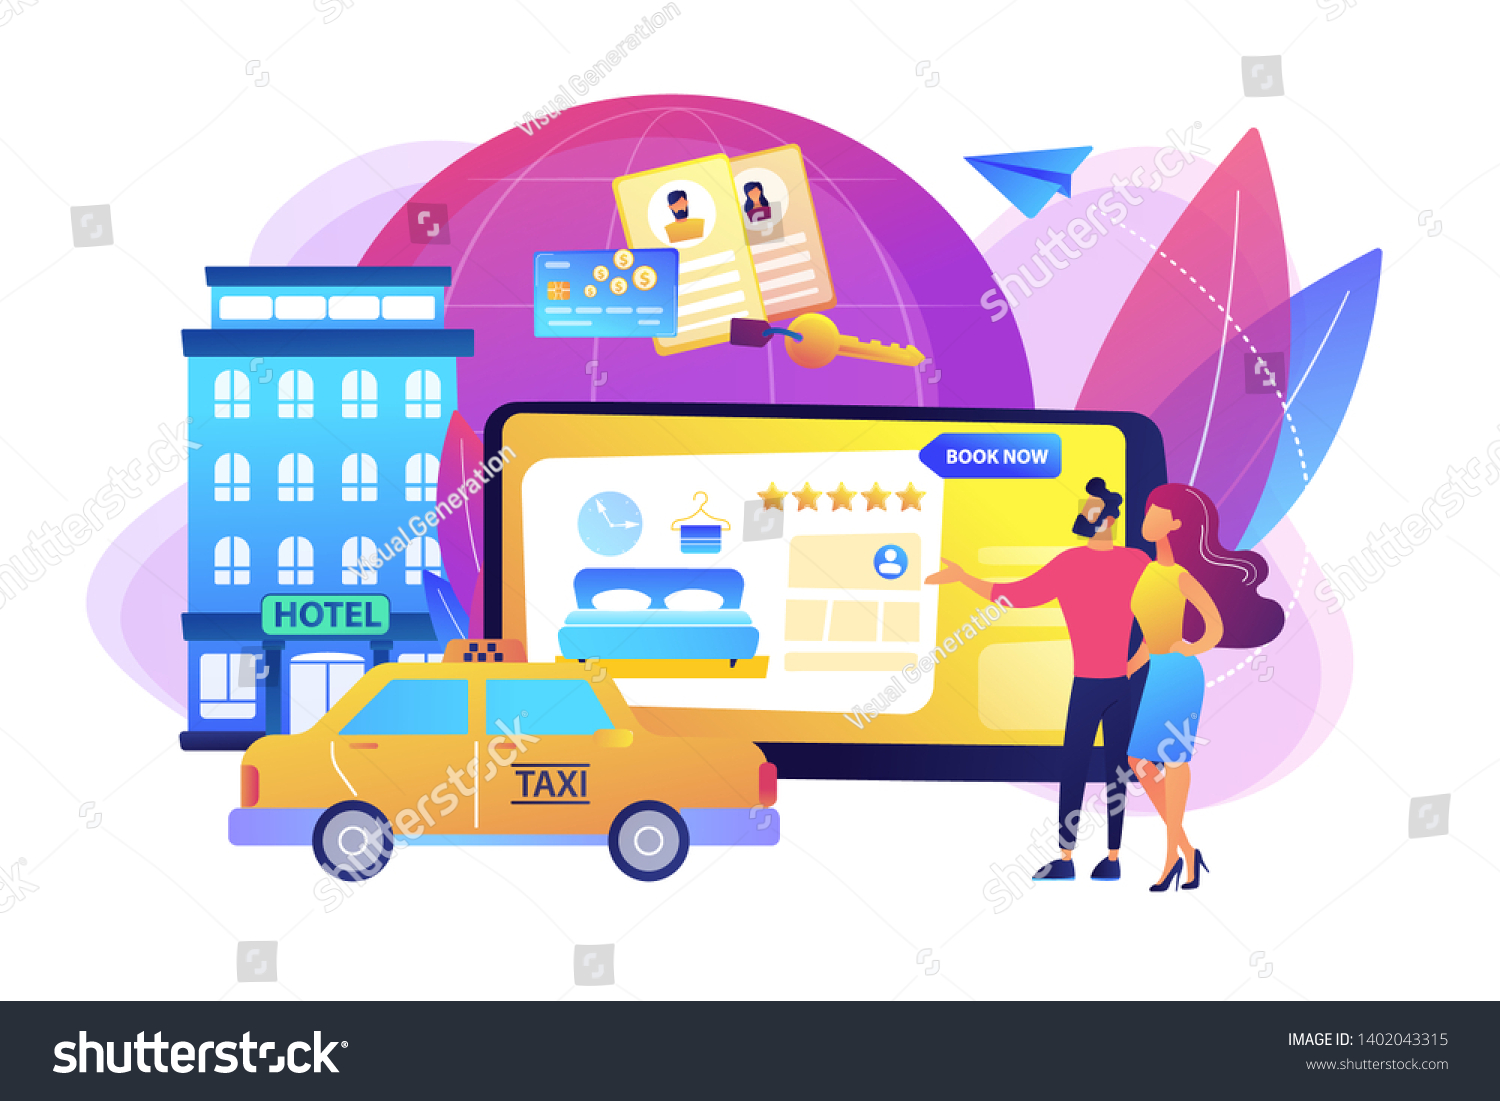 Searching Hostel Accommodation Ordering Taxi Cab Stock Vector